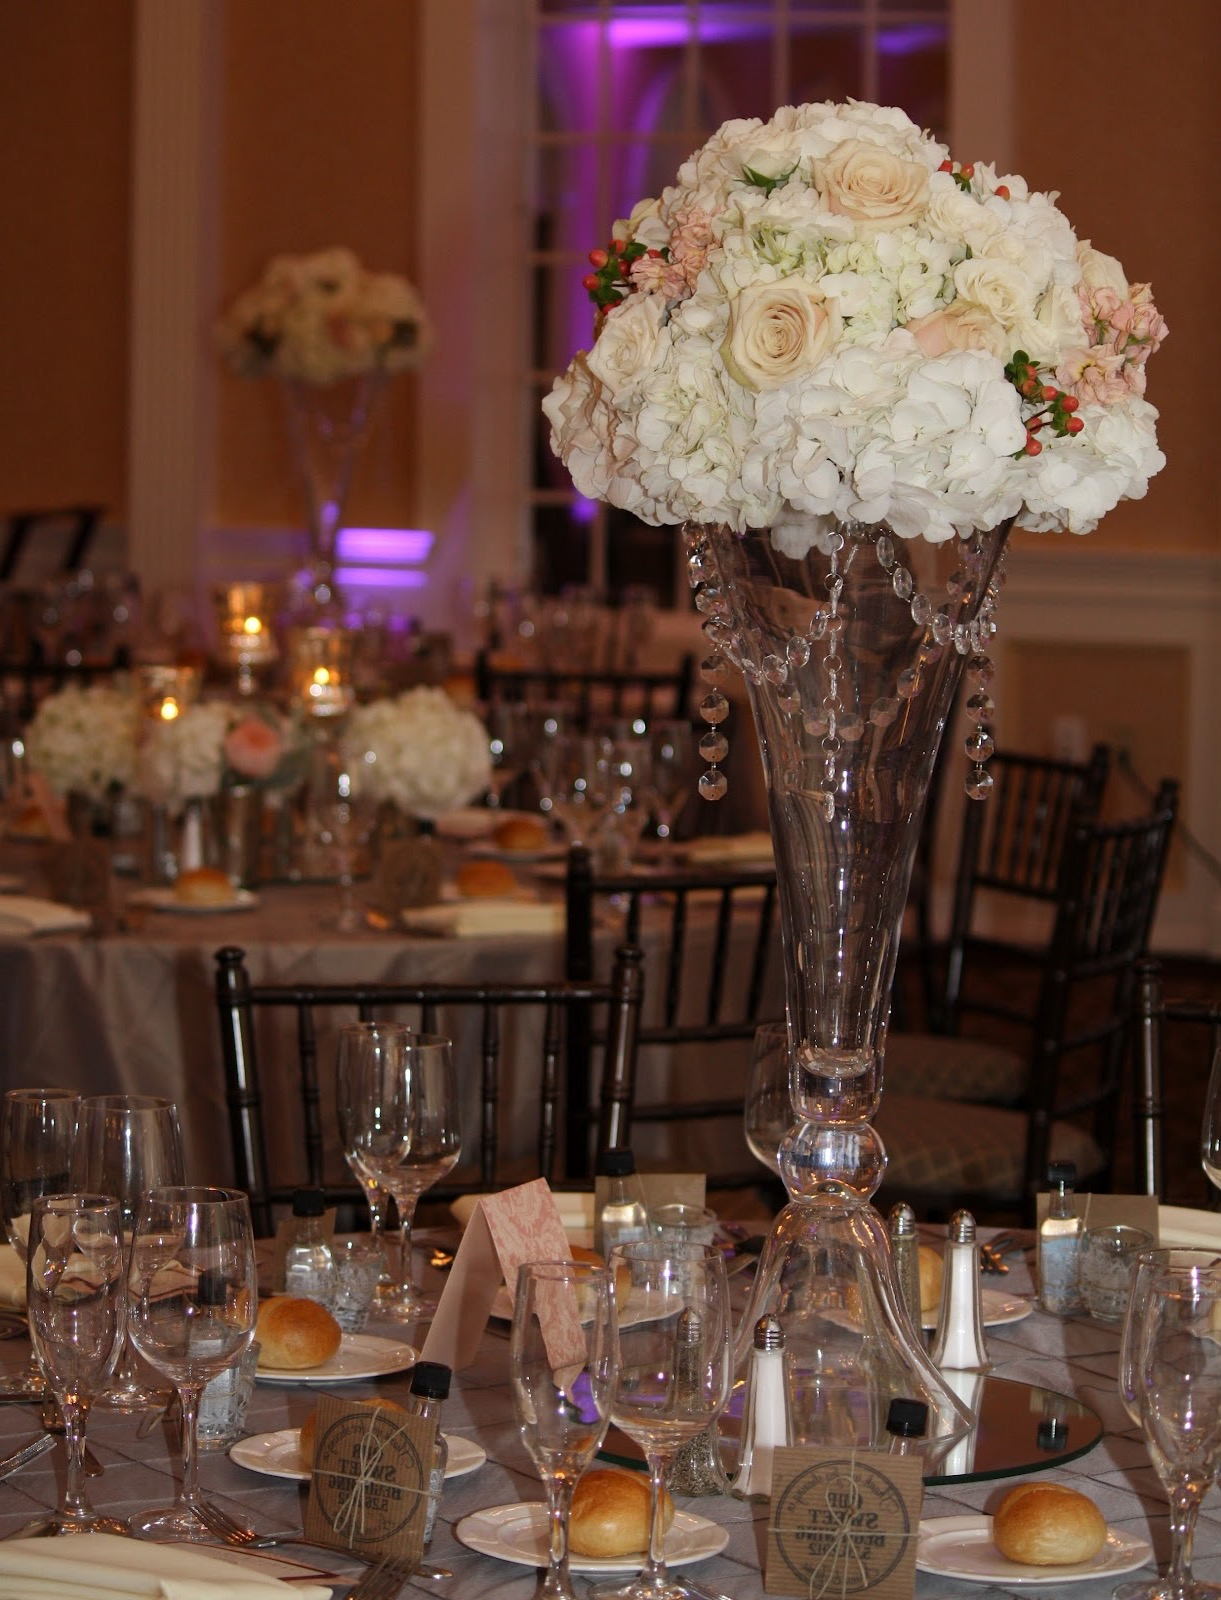 Tall White Flower And Glass Vase Arrangements Centerpieces (View 19 of 30)